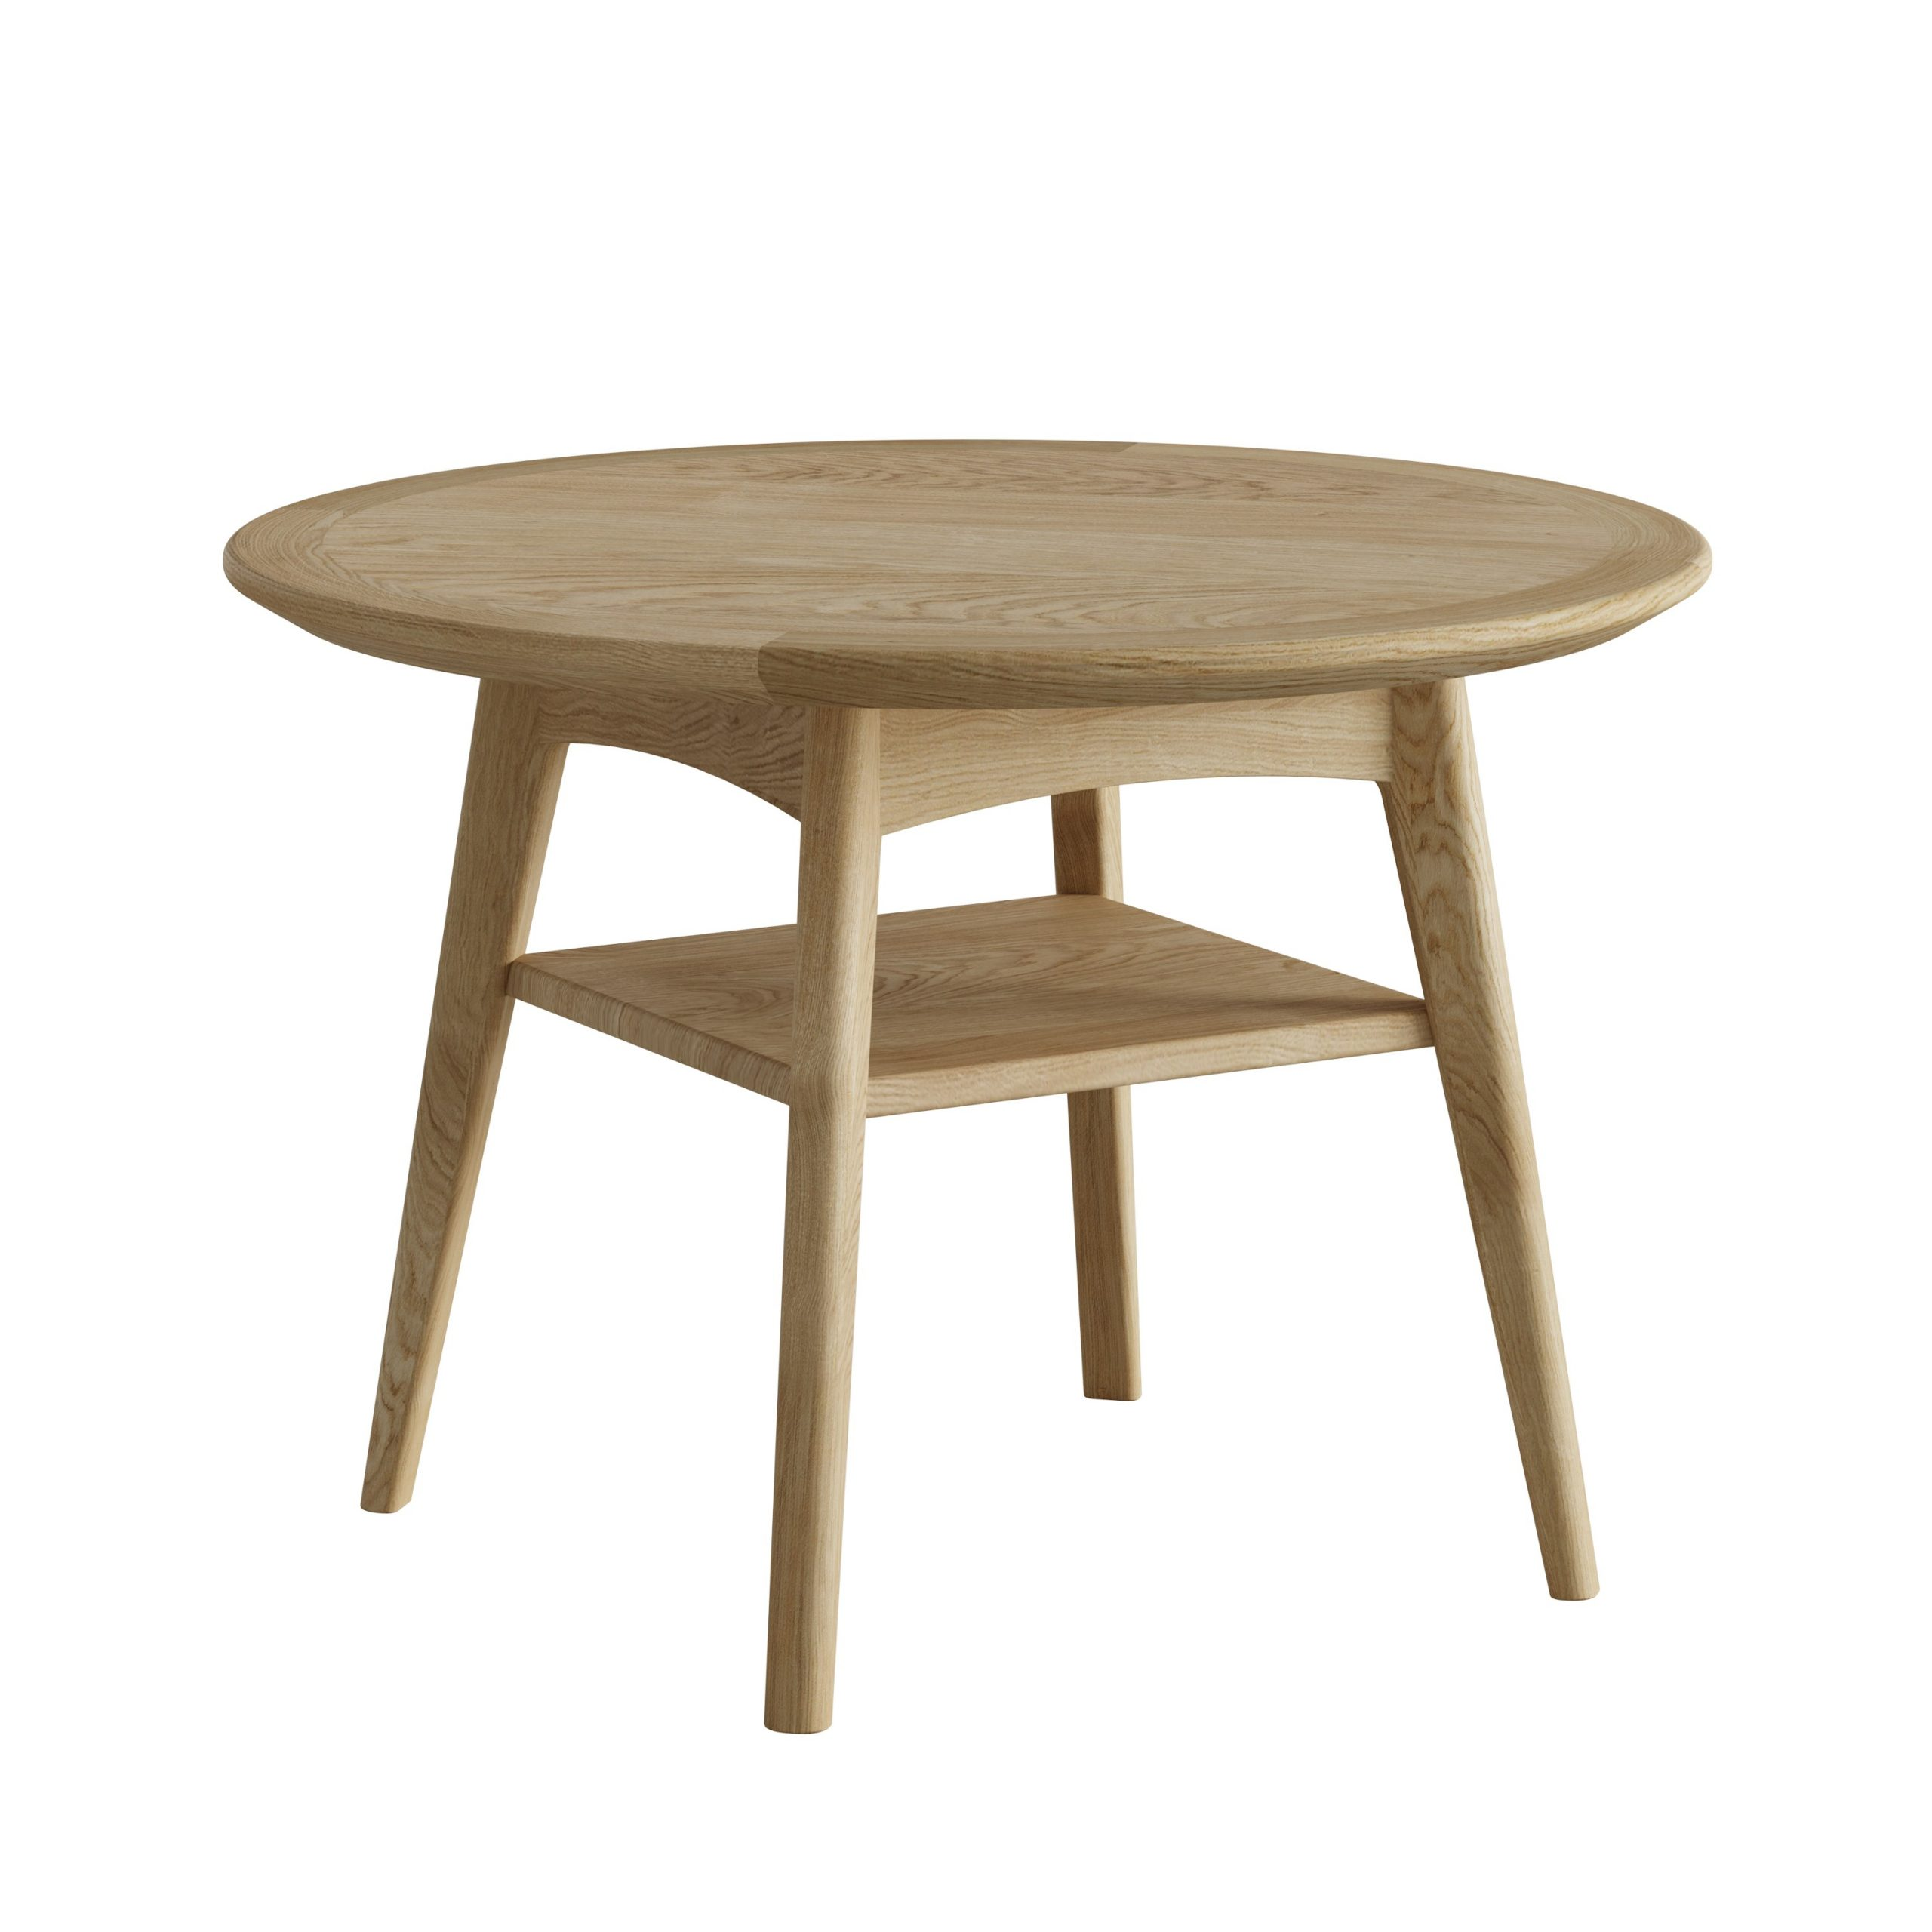 Oak Round Coffee Table - Our Price - Only £199